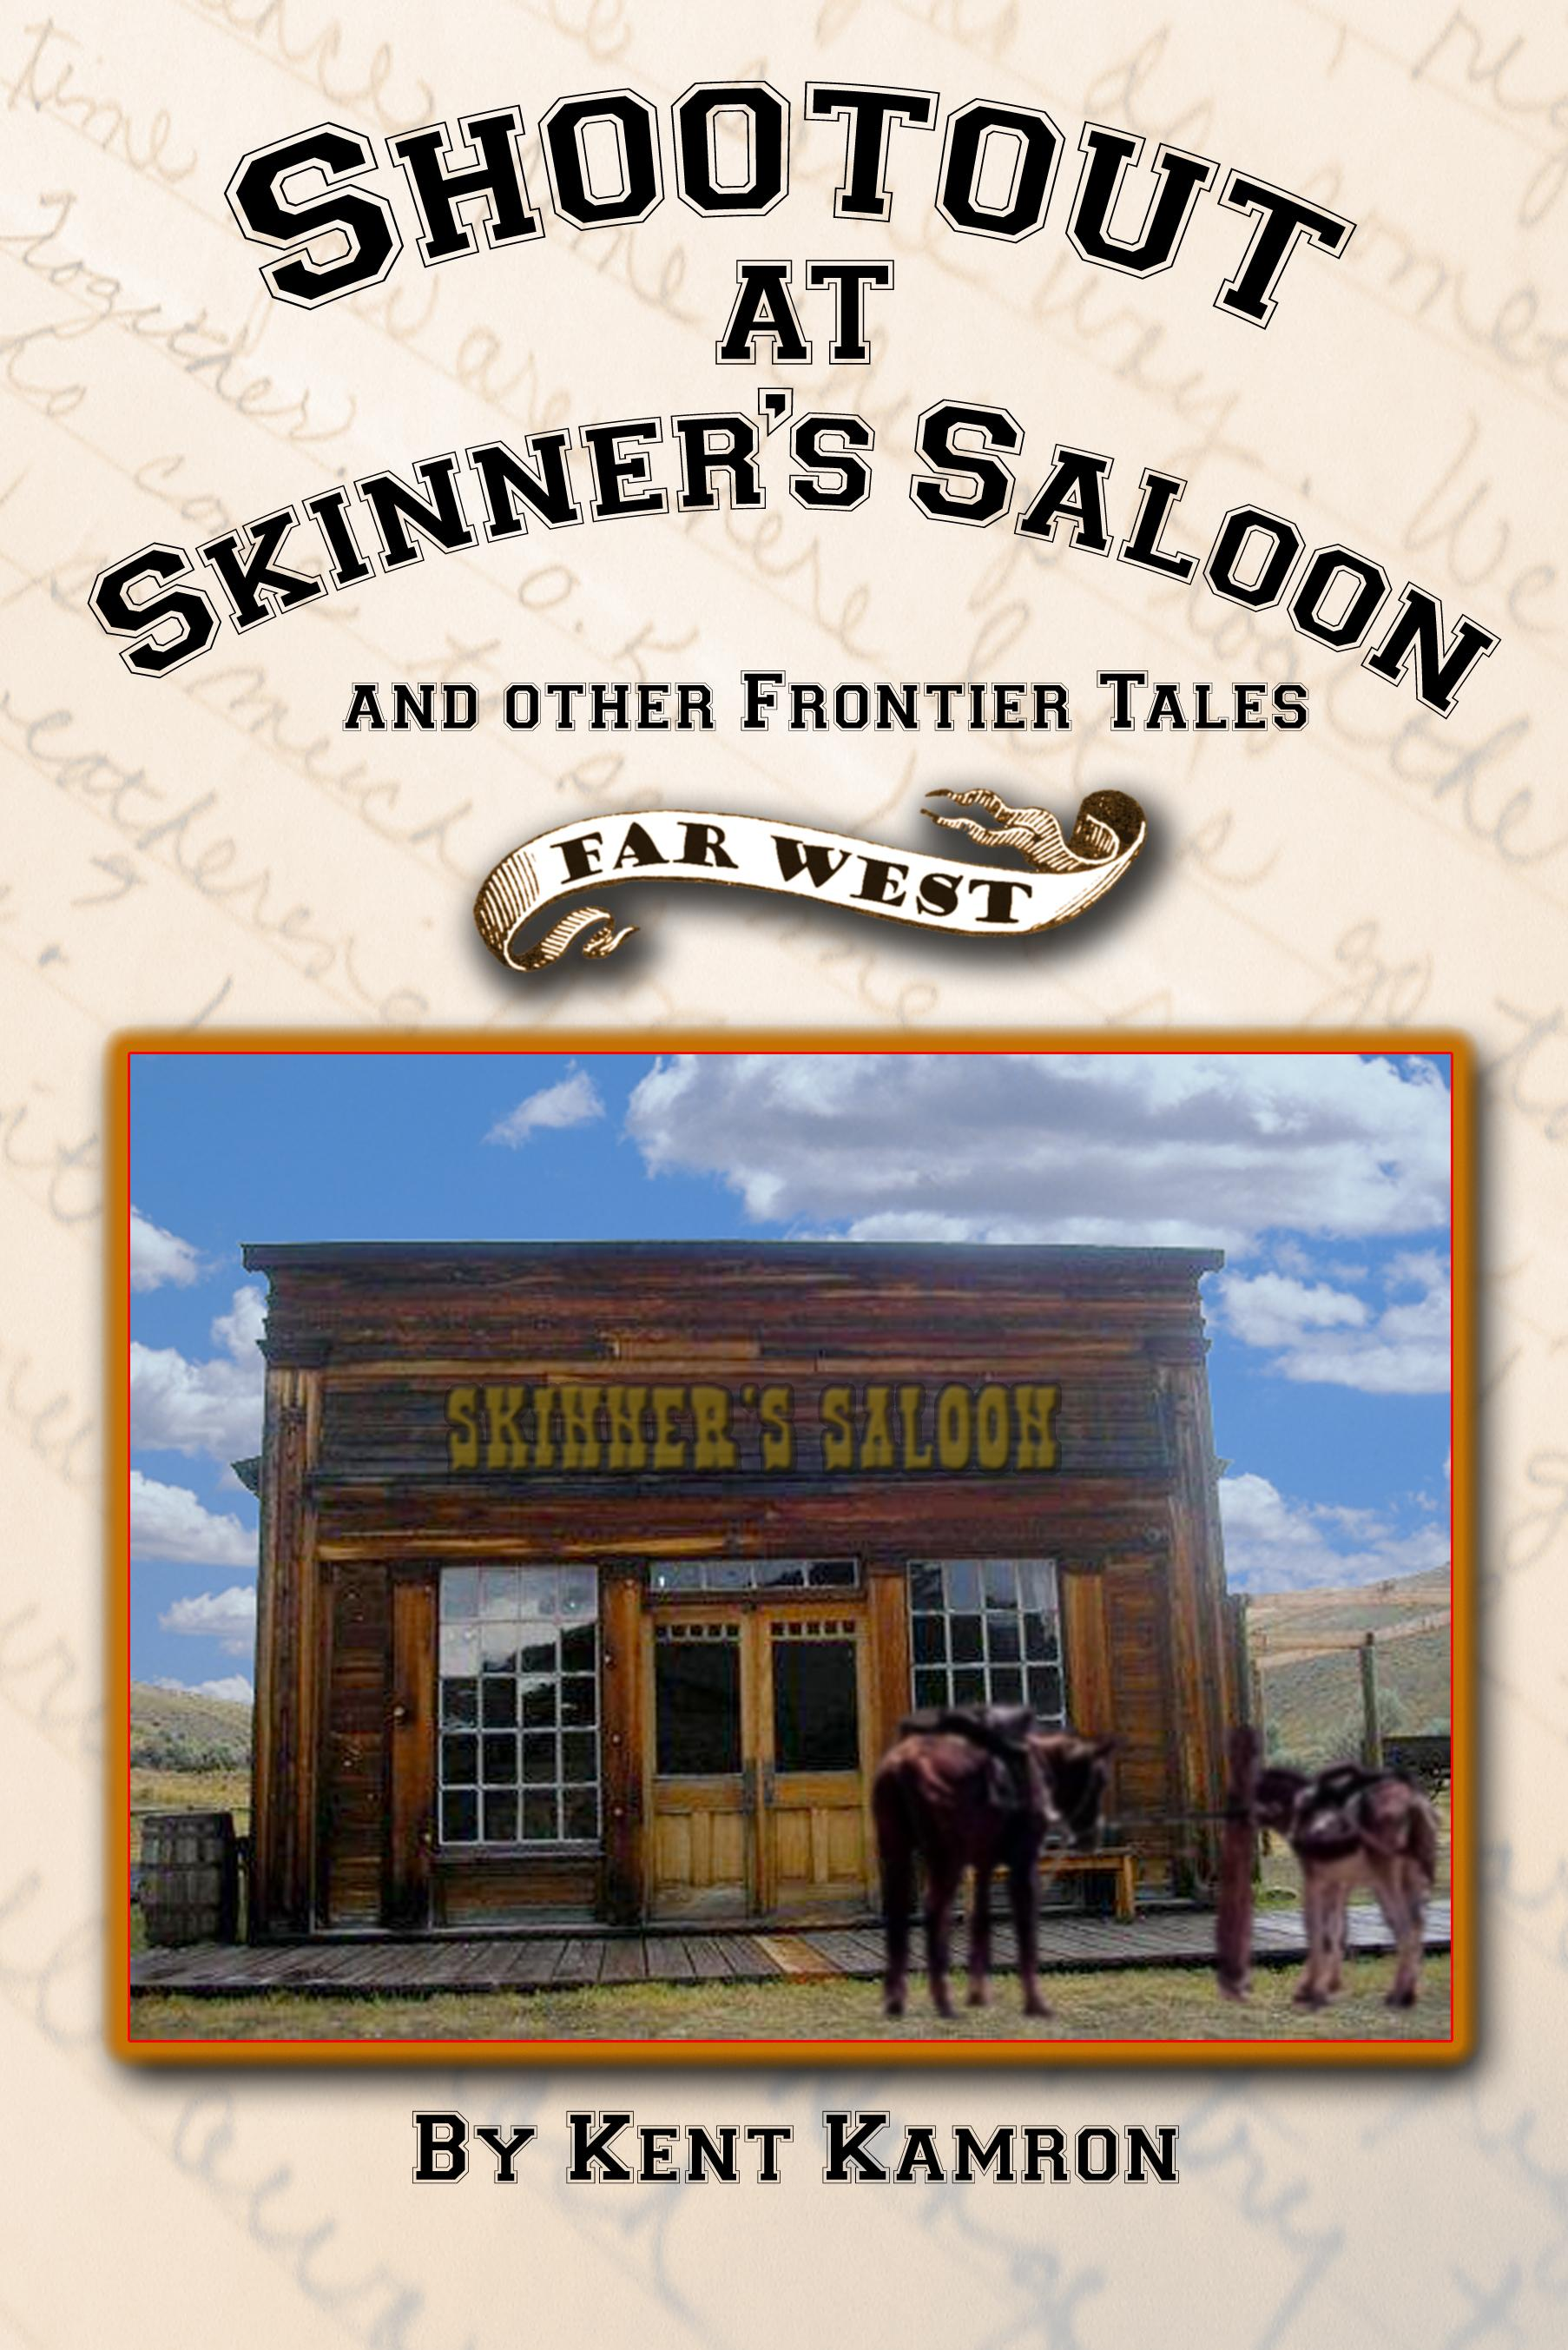 Shootout at Skinner's Saloon